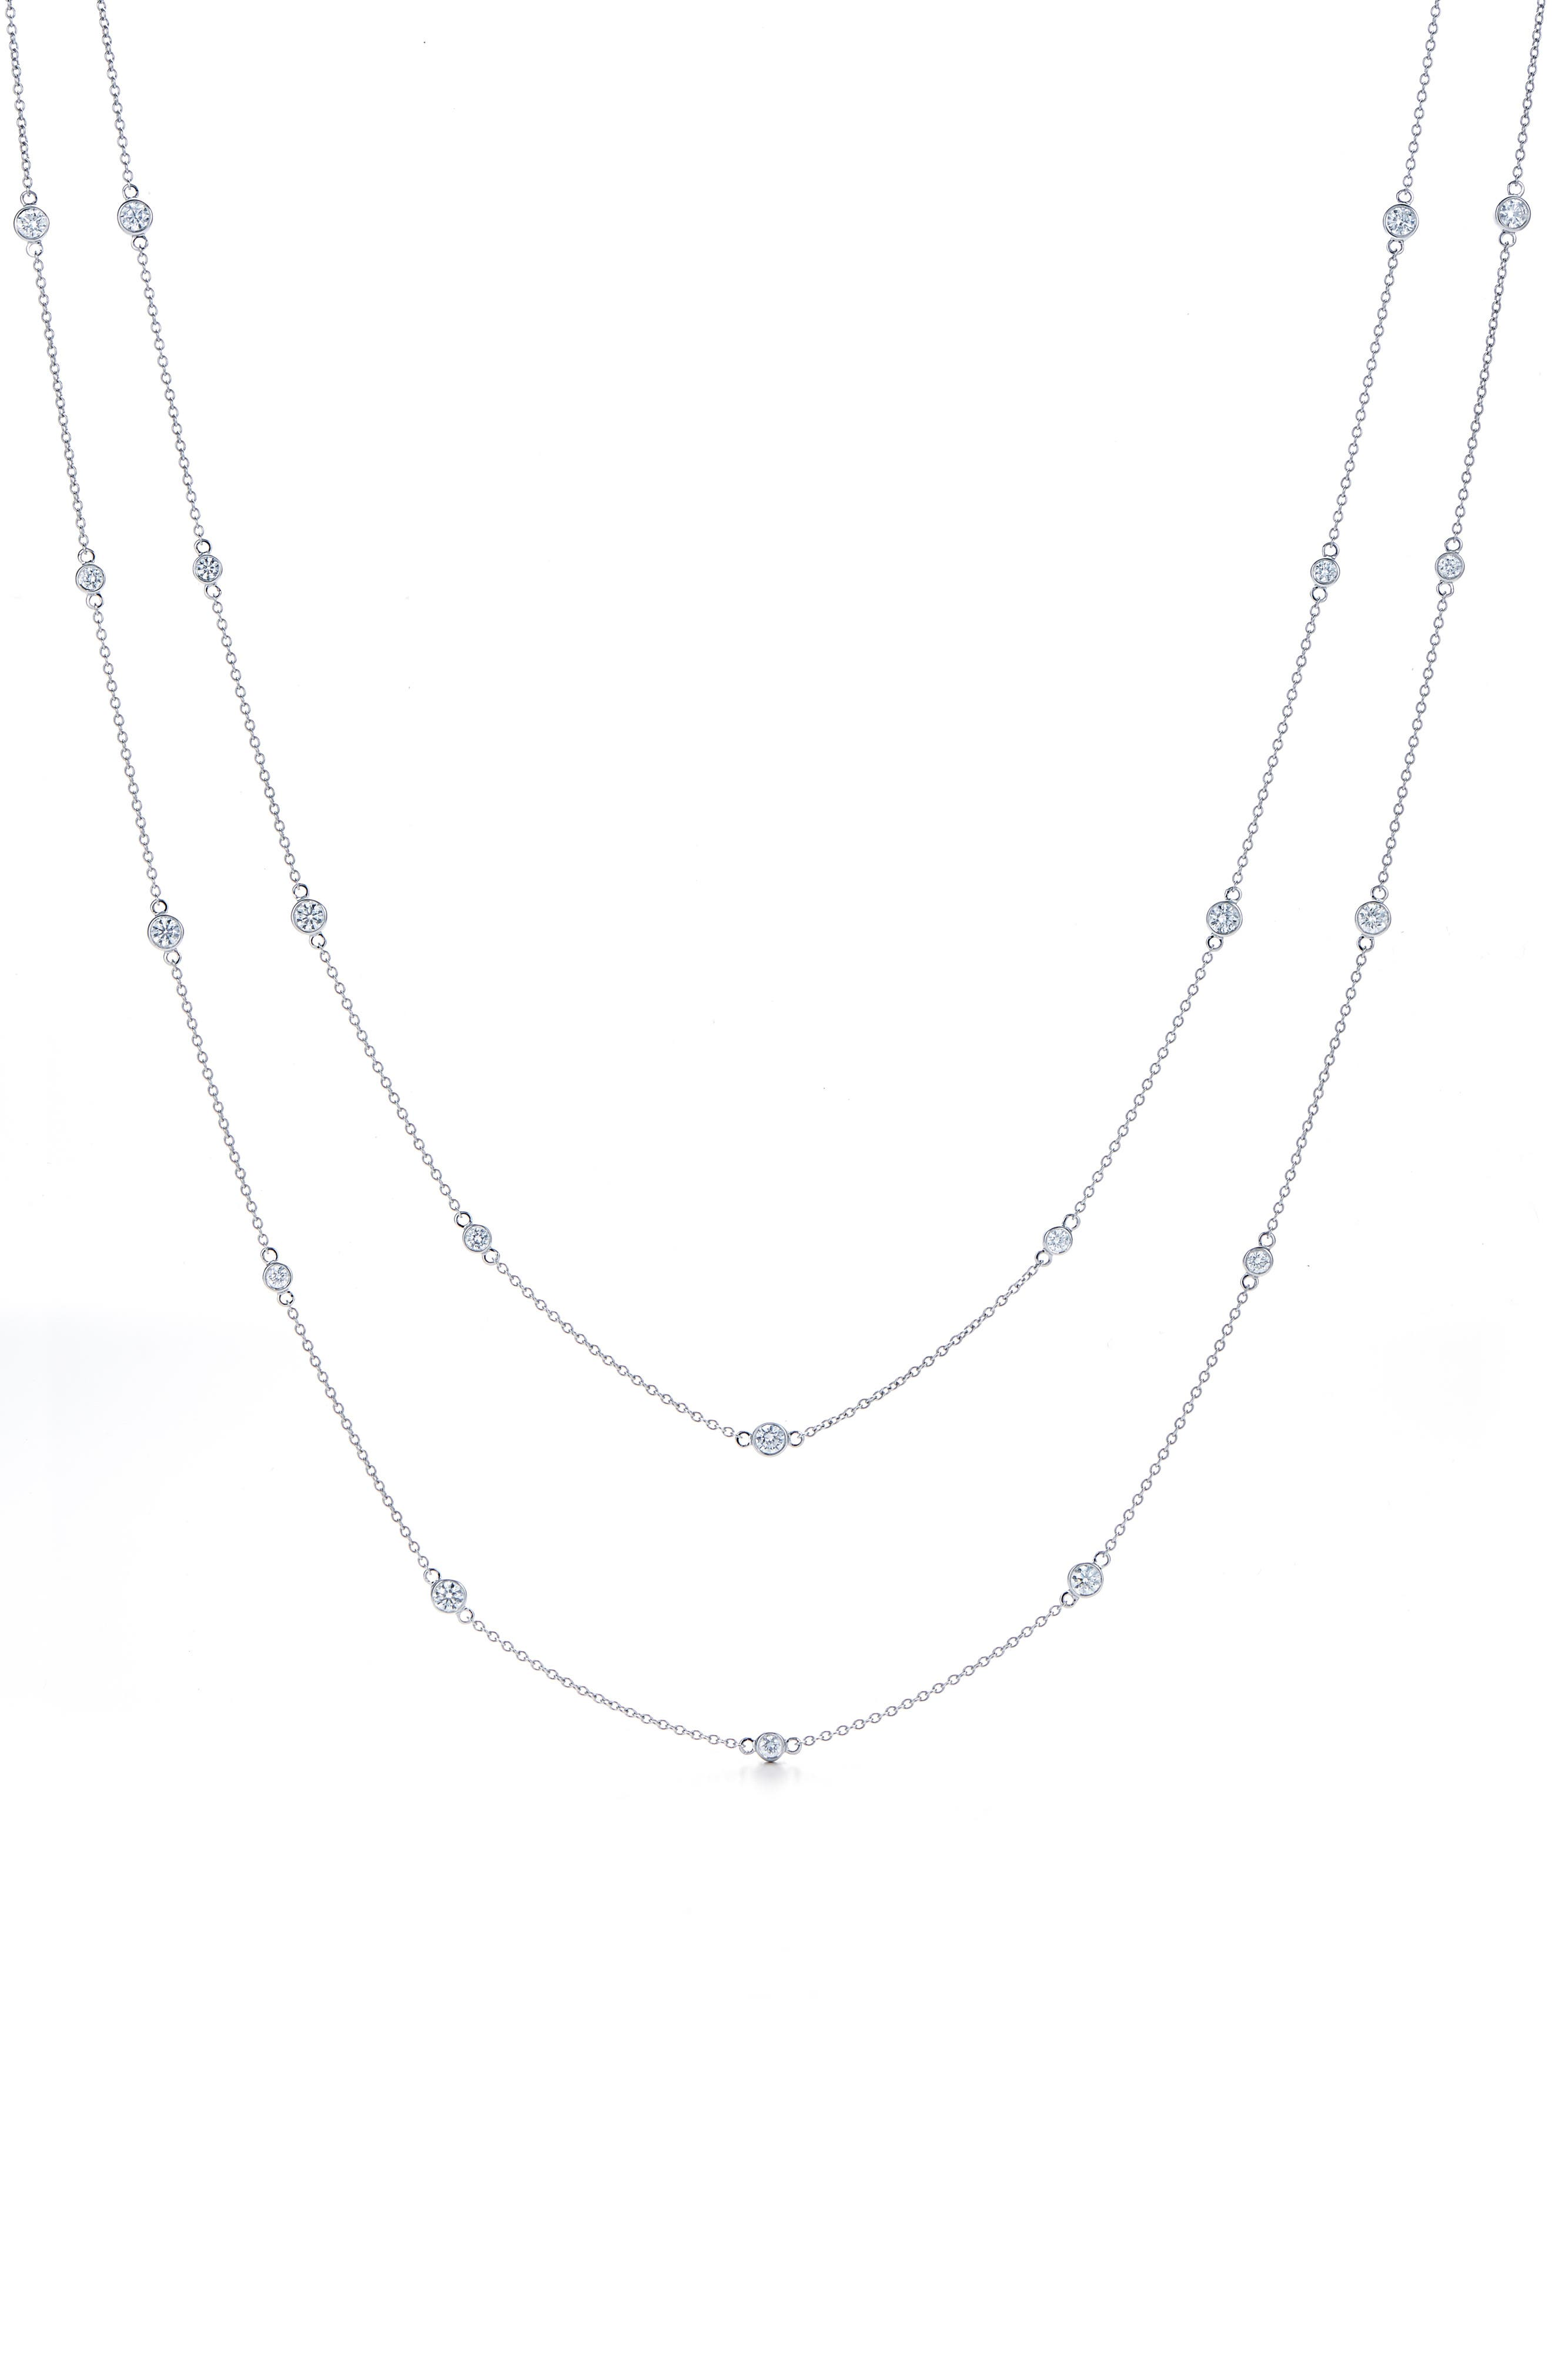 Diamond Strings Long Station Necklace,                             Main thumbnail 1, color,                             WHITE GOLD